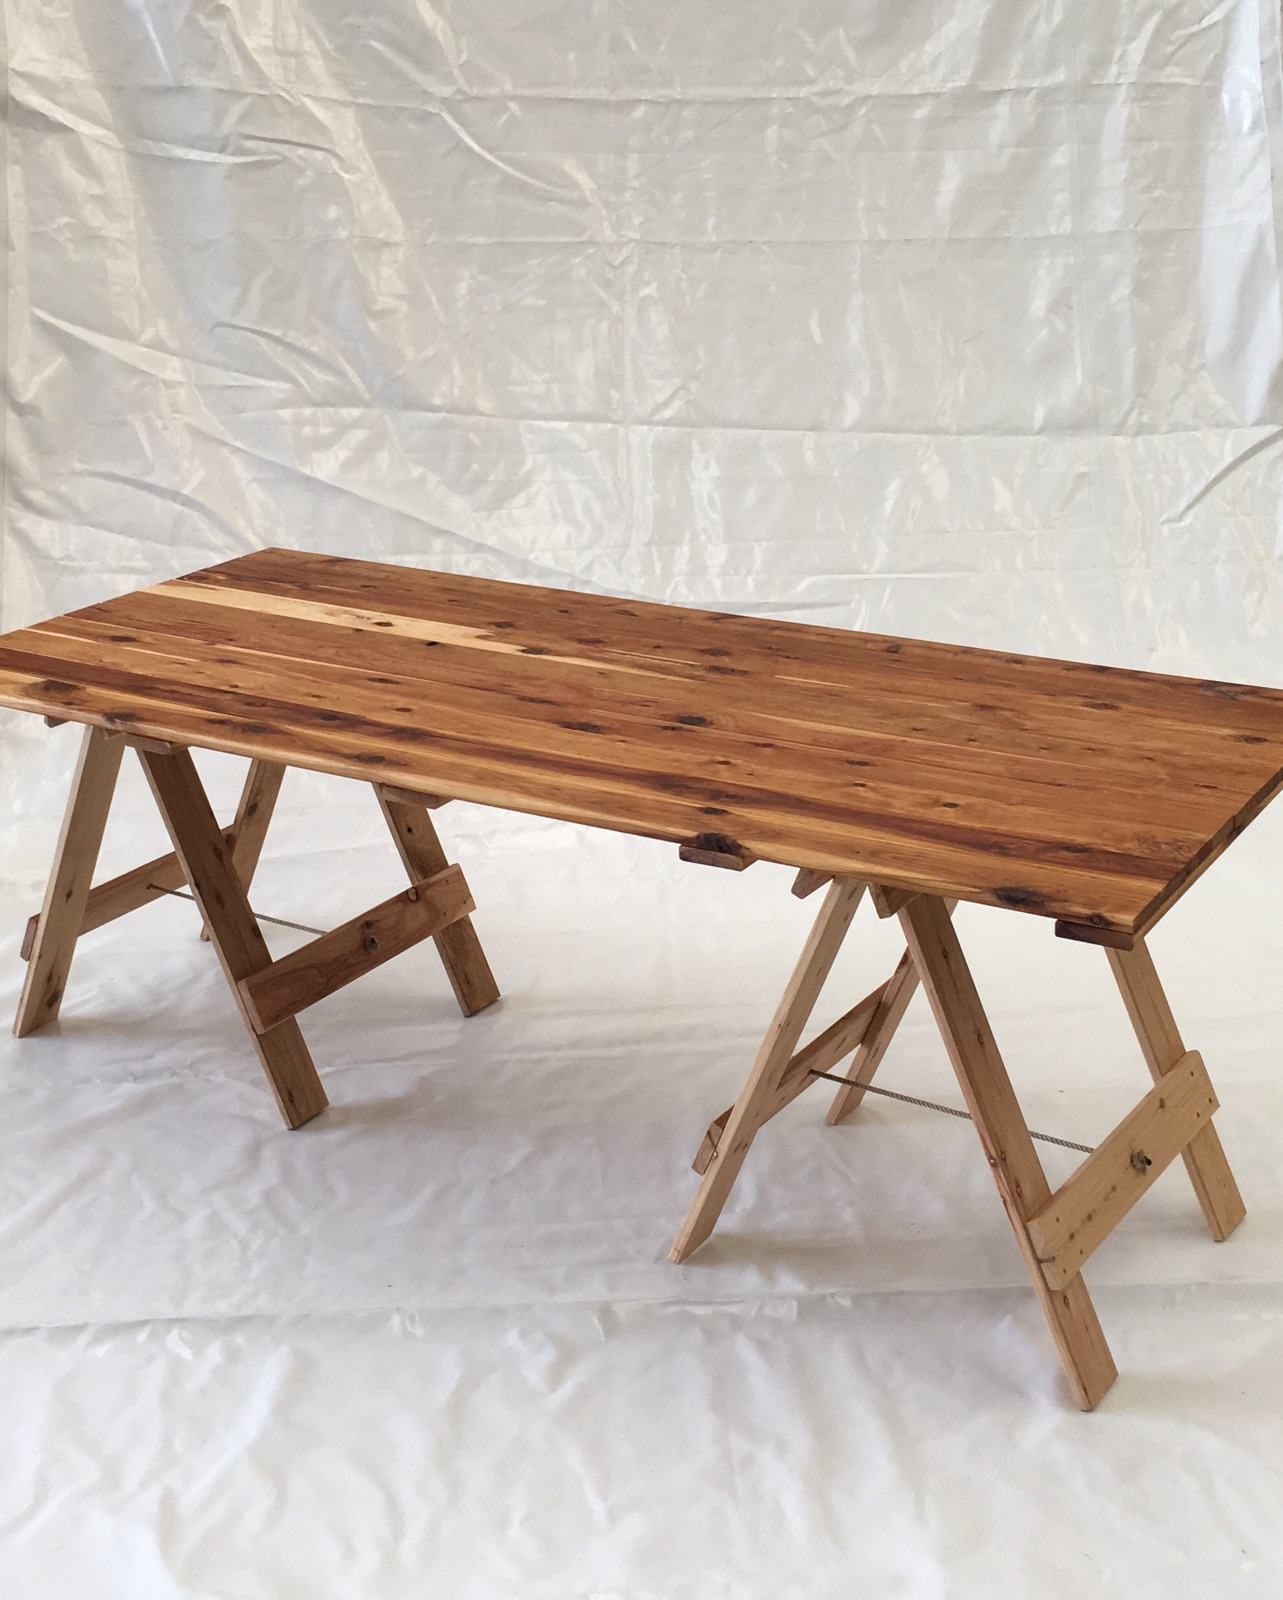 Rustic top trestle table 2m x 9m